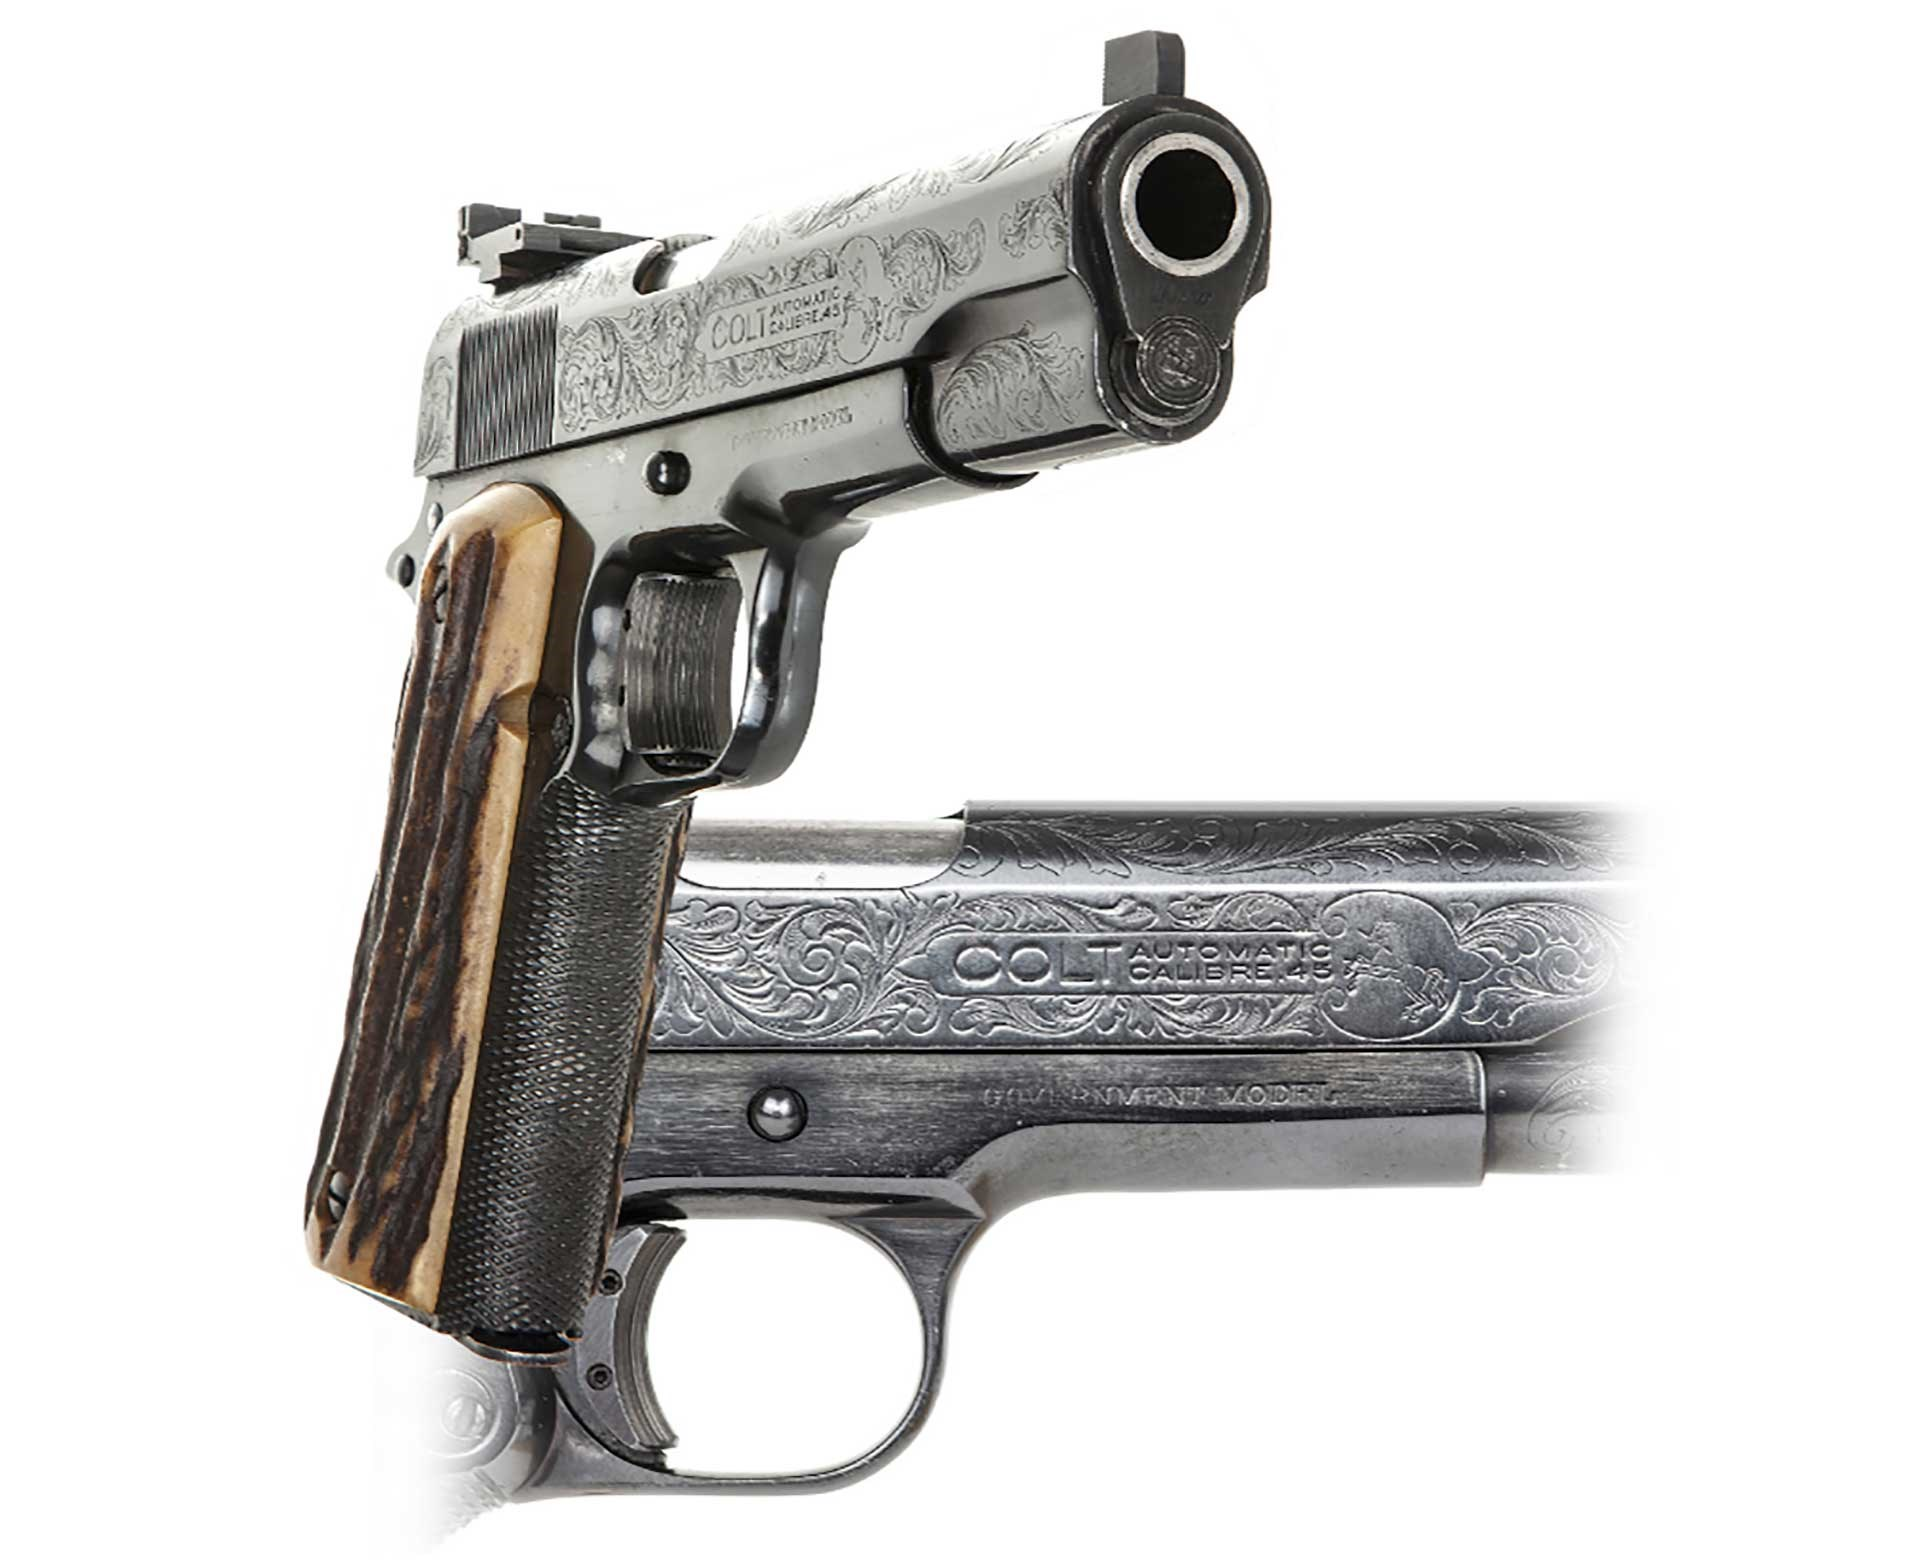 Al Capone's personal 1911 shown from the front and the side, displaying figurative engraving.